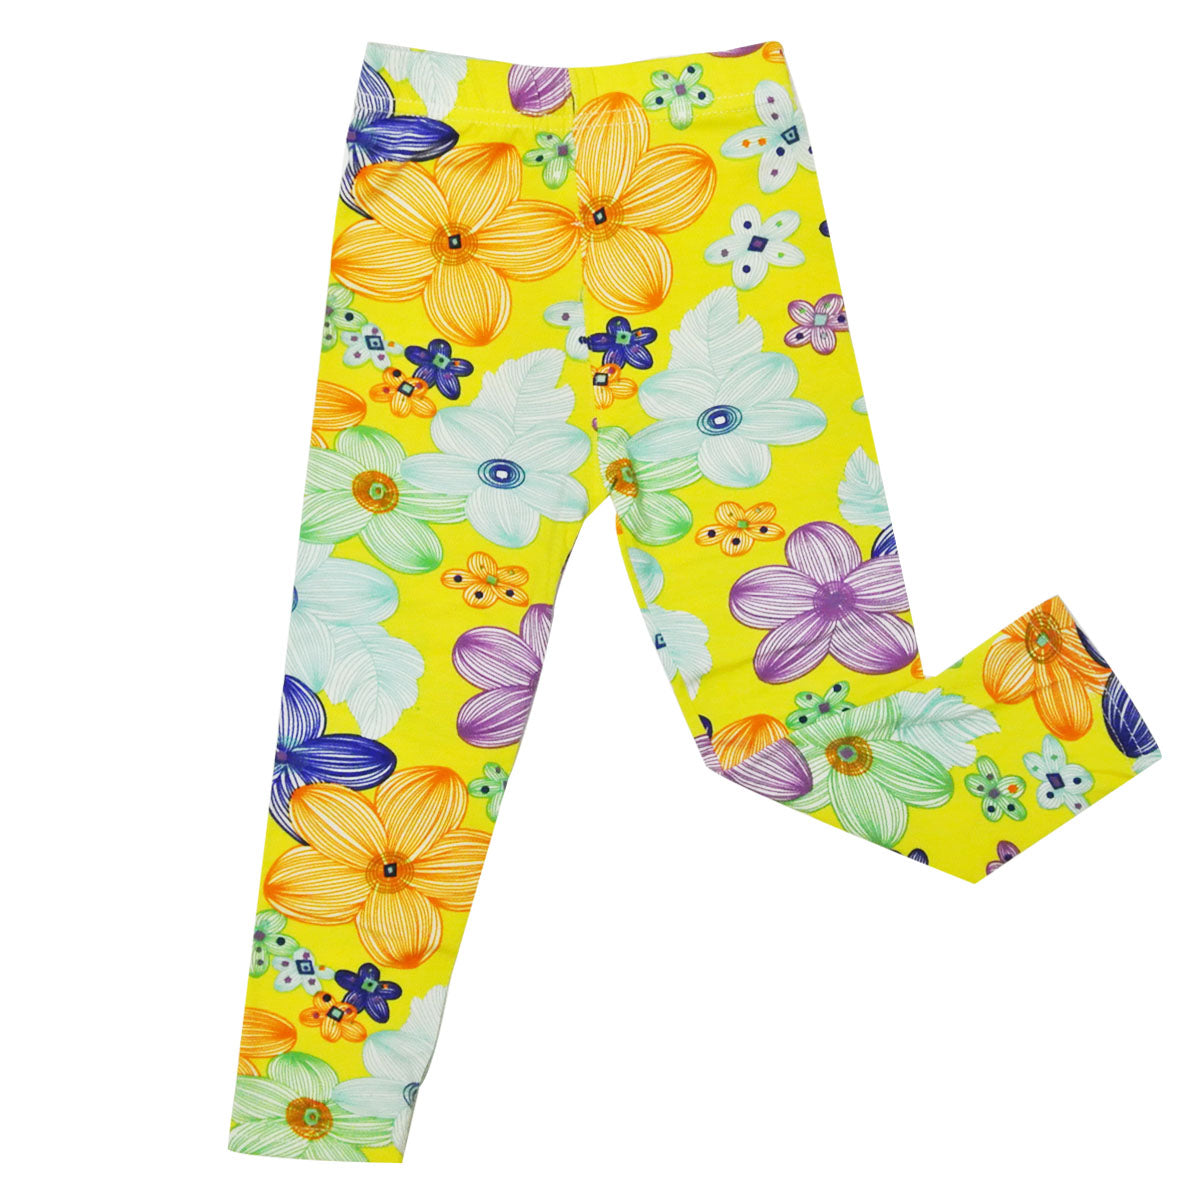 Wrapables Yellow Flower Colorful Doodle Leggings